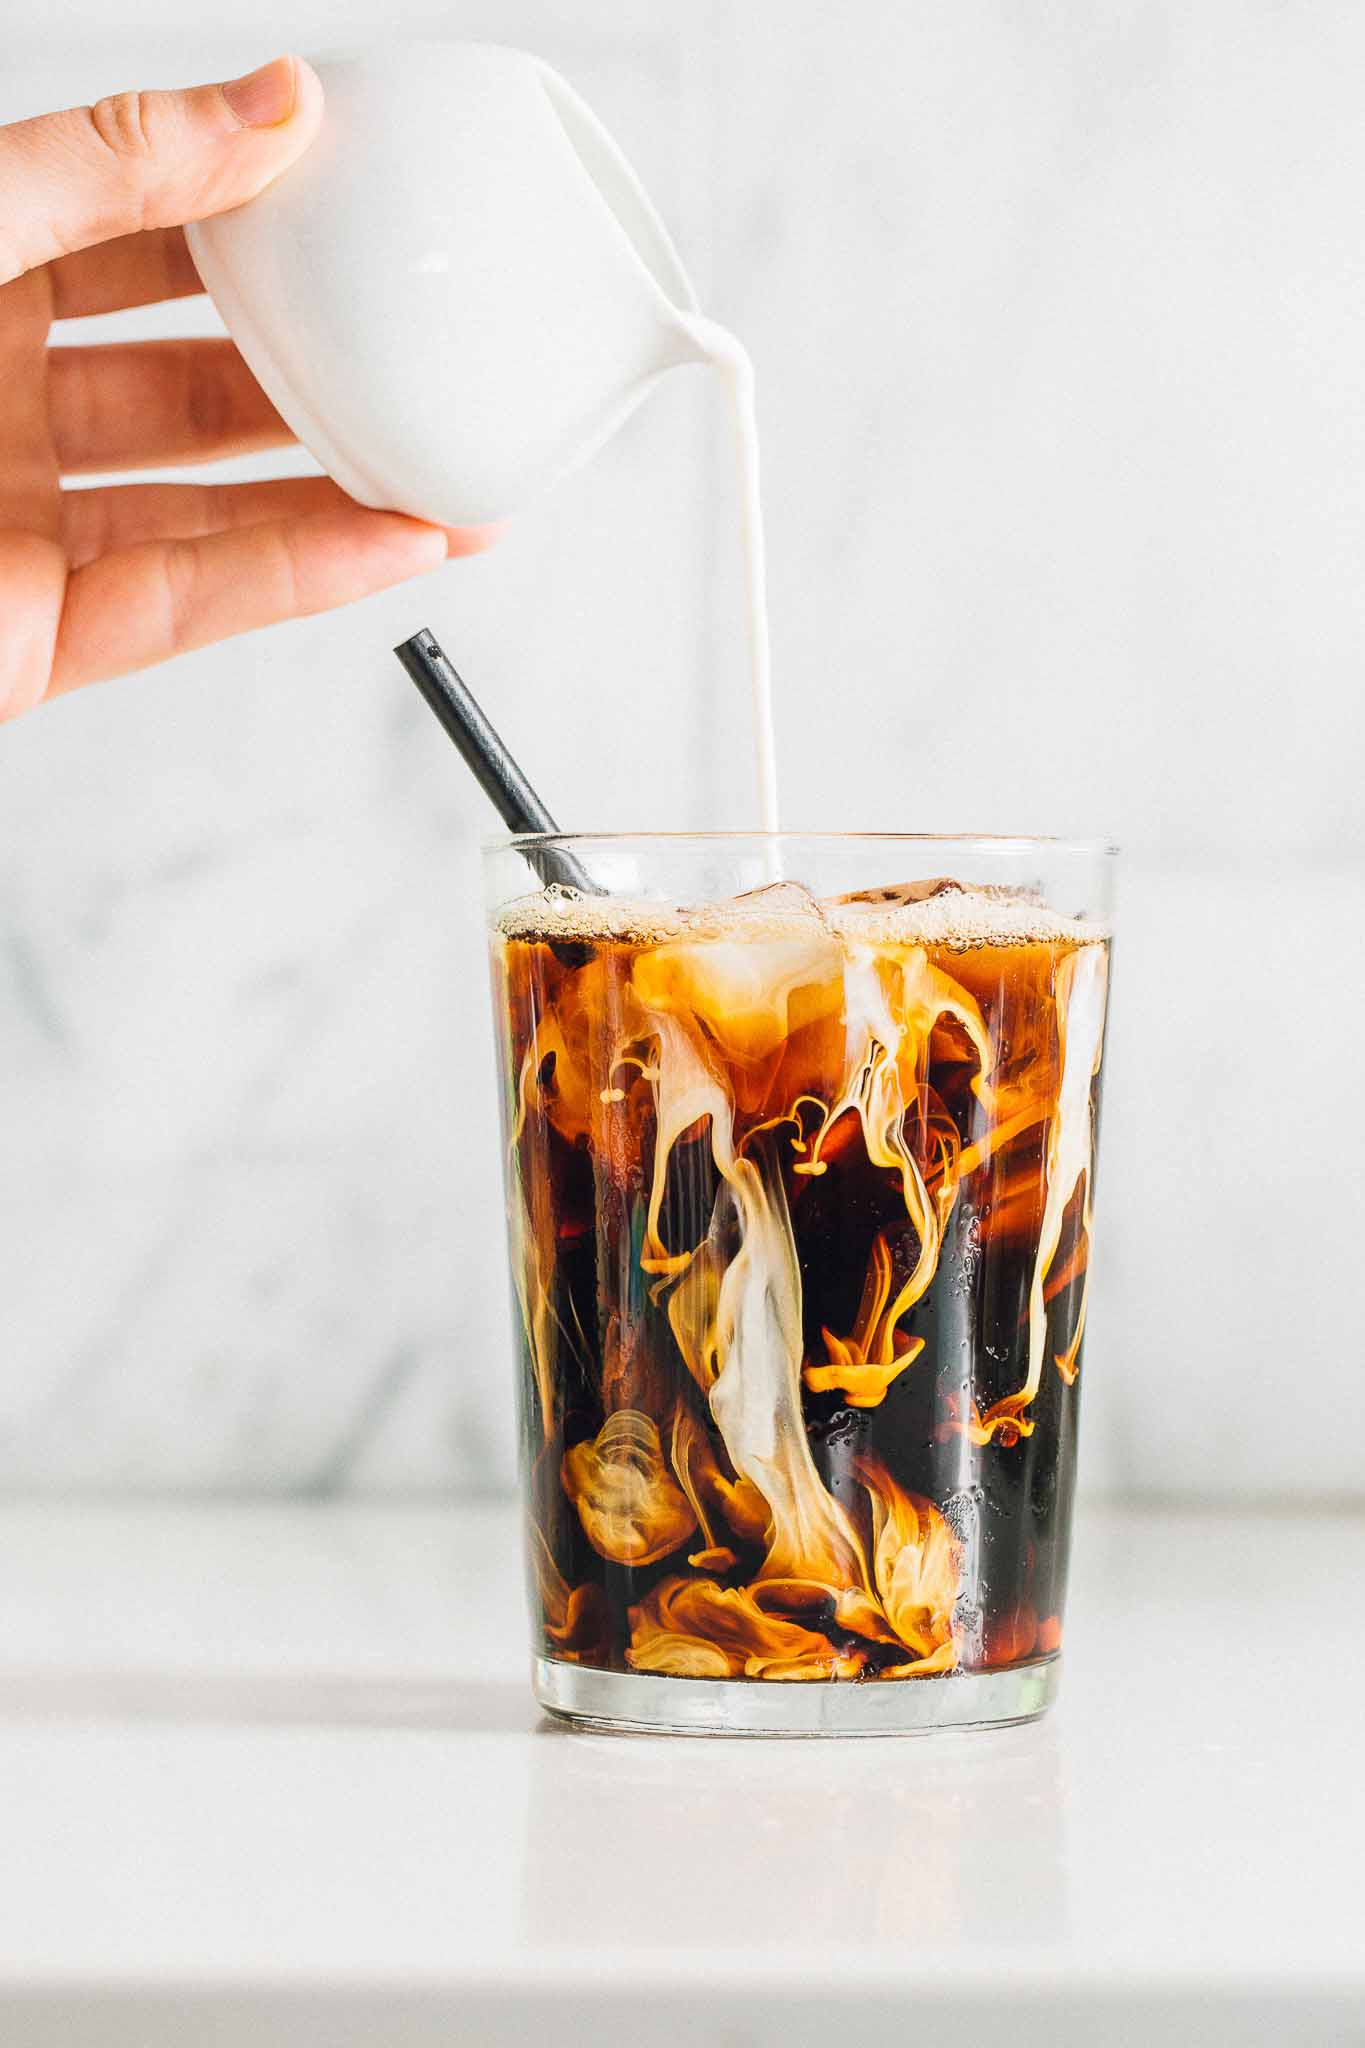 Peanut Butter Iced Latte: No frother? No problem. This is your new go-to coffee drink when you're at home.